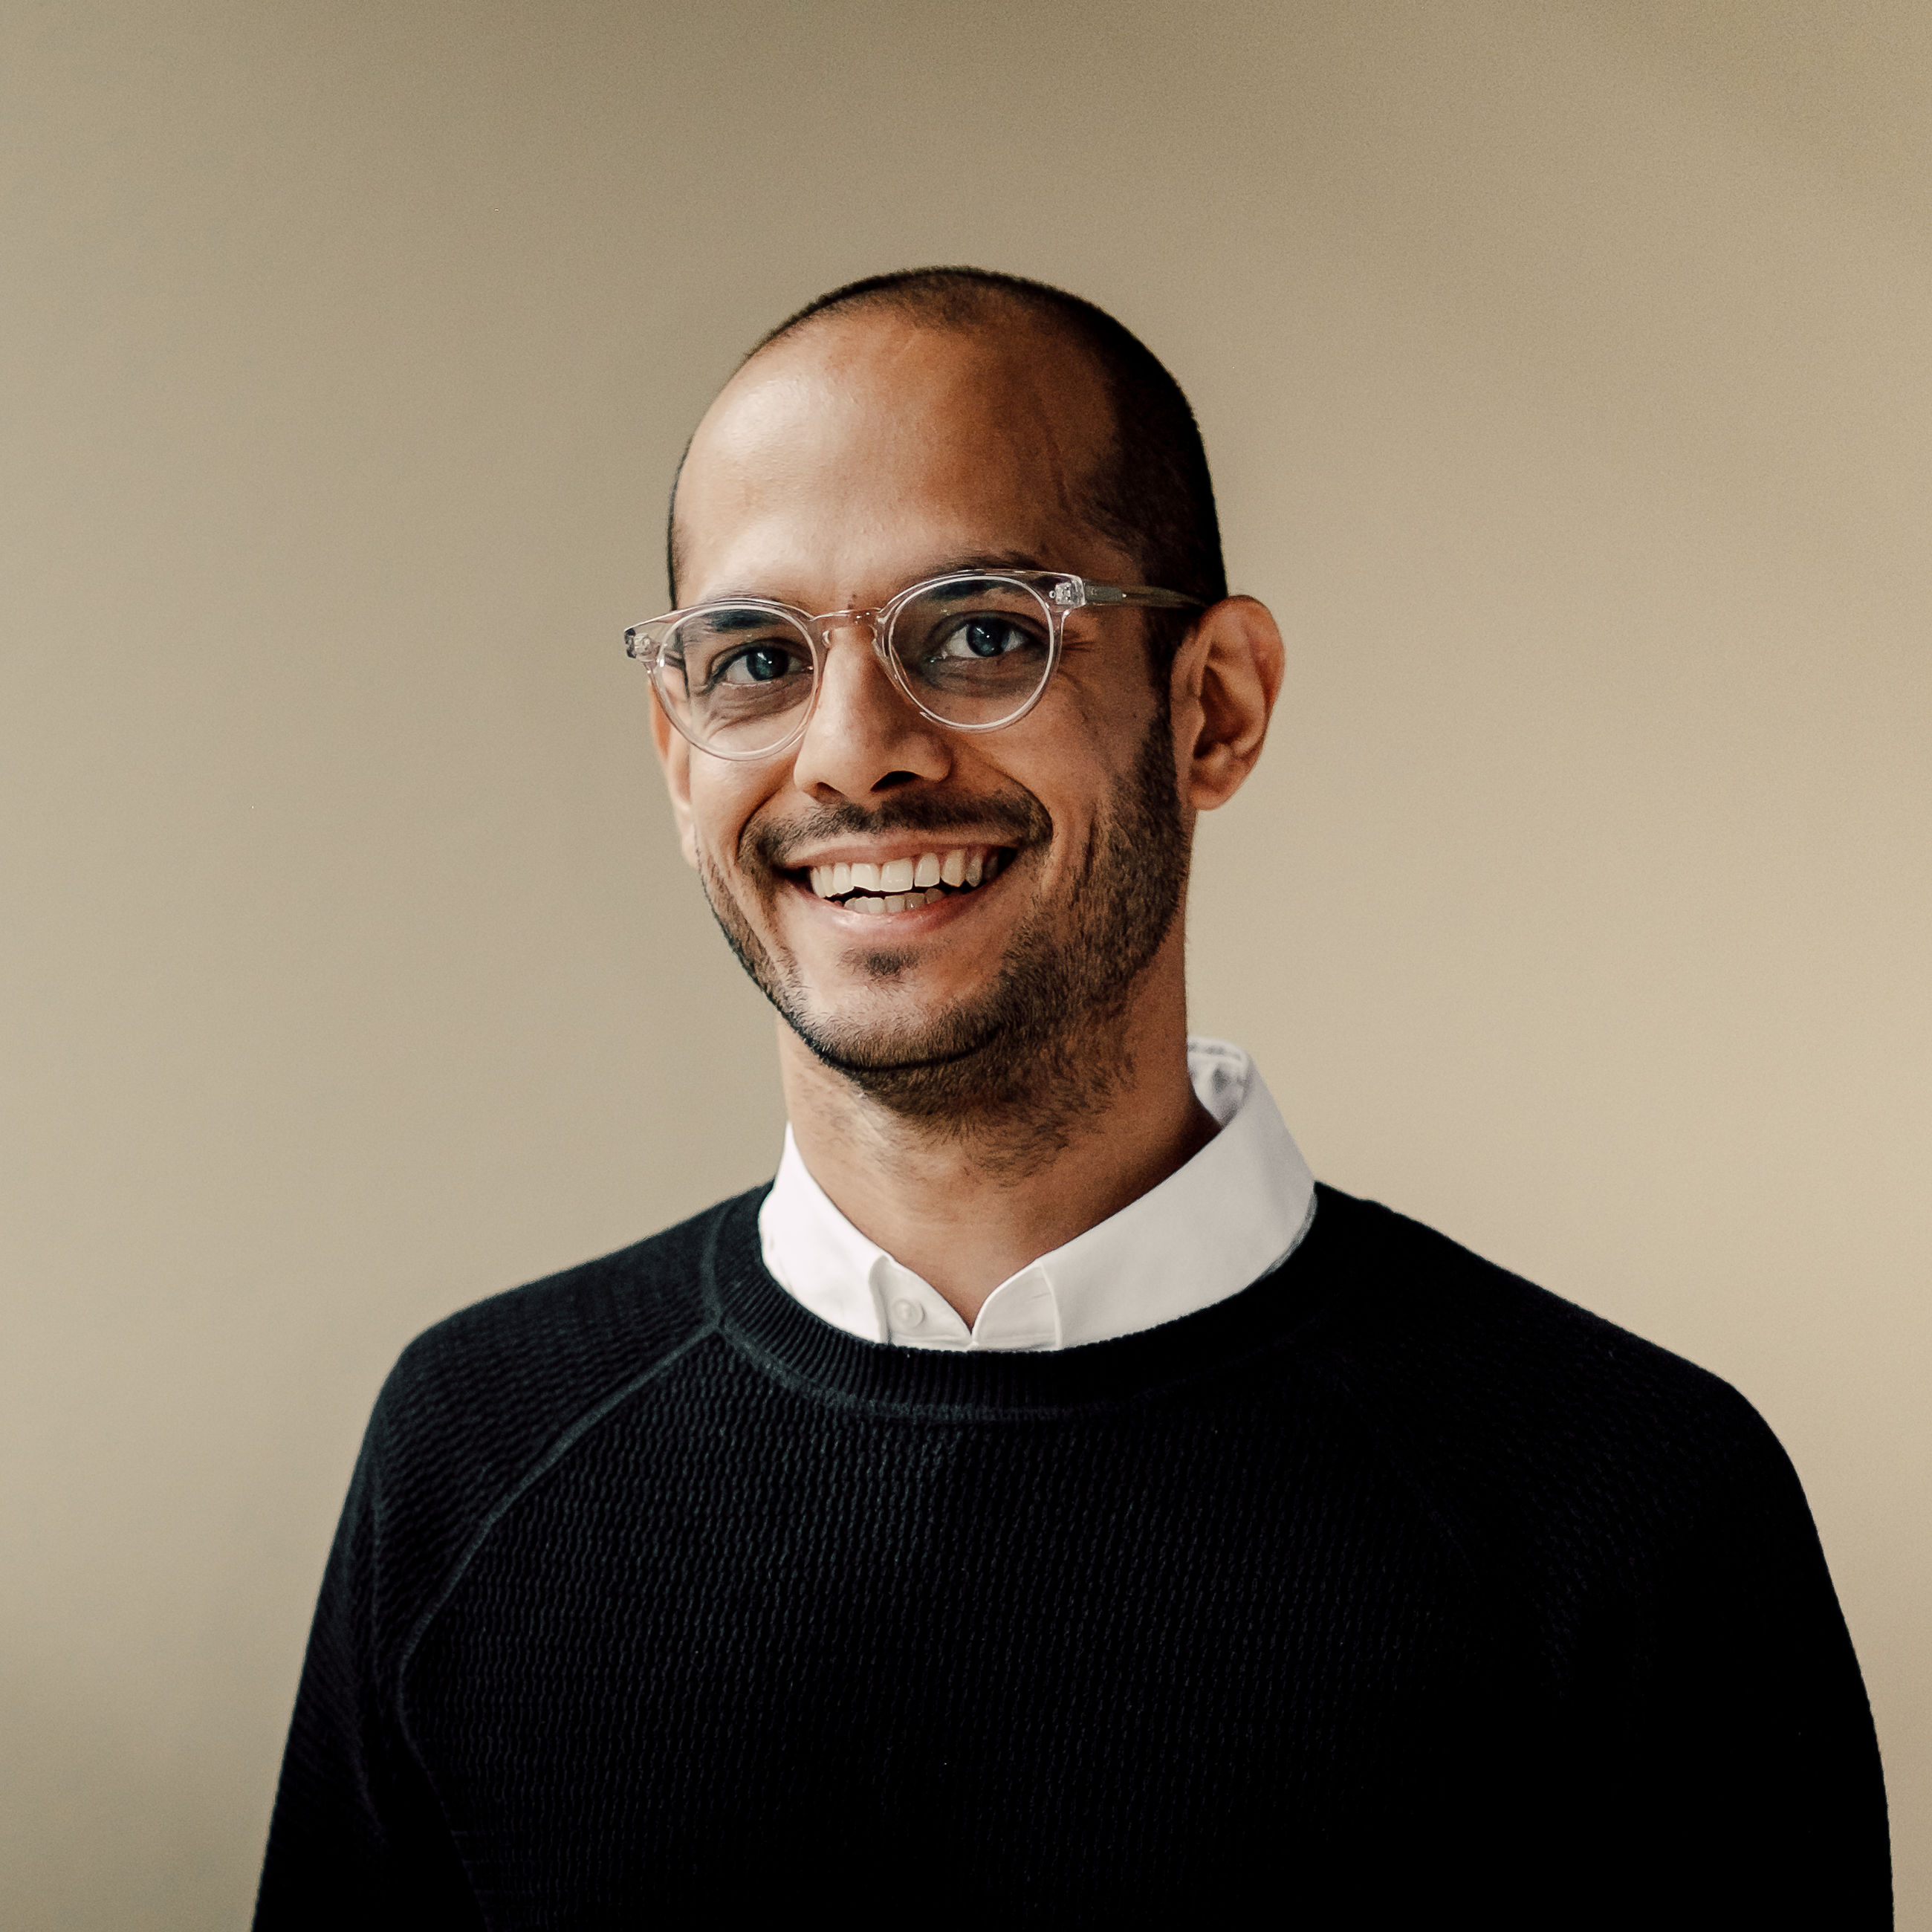 portrait, looking at camera, only men, one man only, one young man only, studio shot, young adult, one person, individuality, adults only, eyeglasses, real people, shaved head, confidence, adult, people, close-up, smiling, day